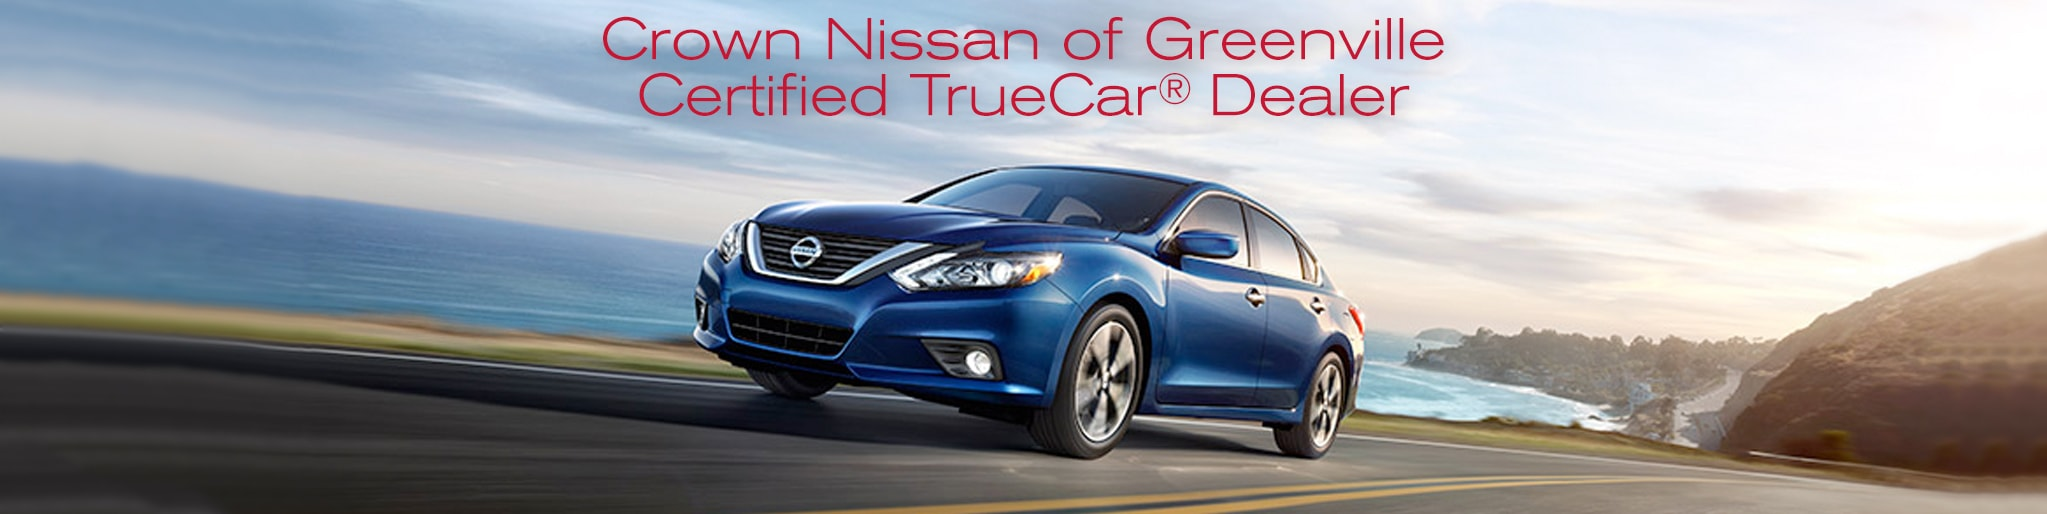 certified truecar nissan dealer in greenville sc new and used nissan truecar dealer near. Black Bedroom Furniture Sets. Home Design Ideas